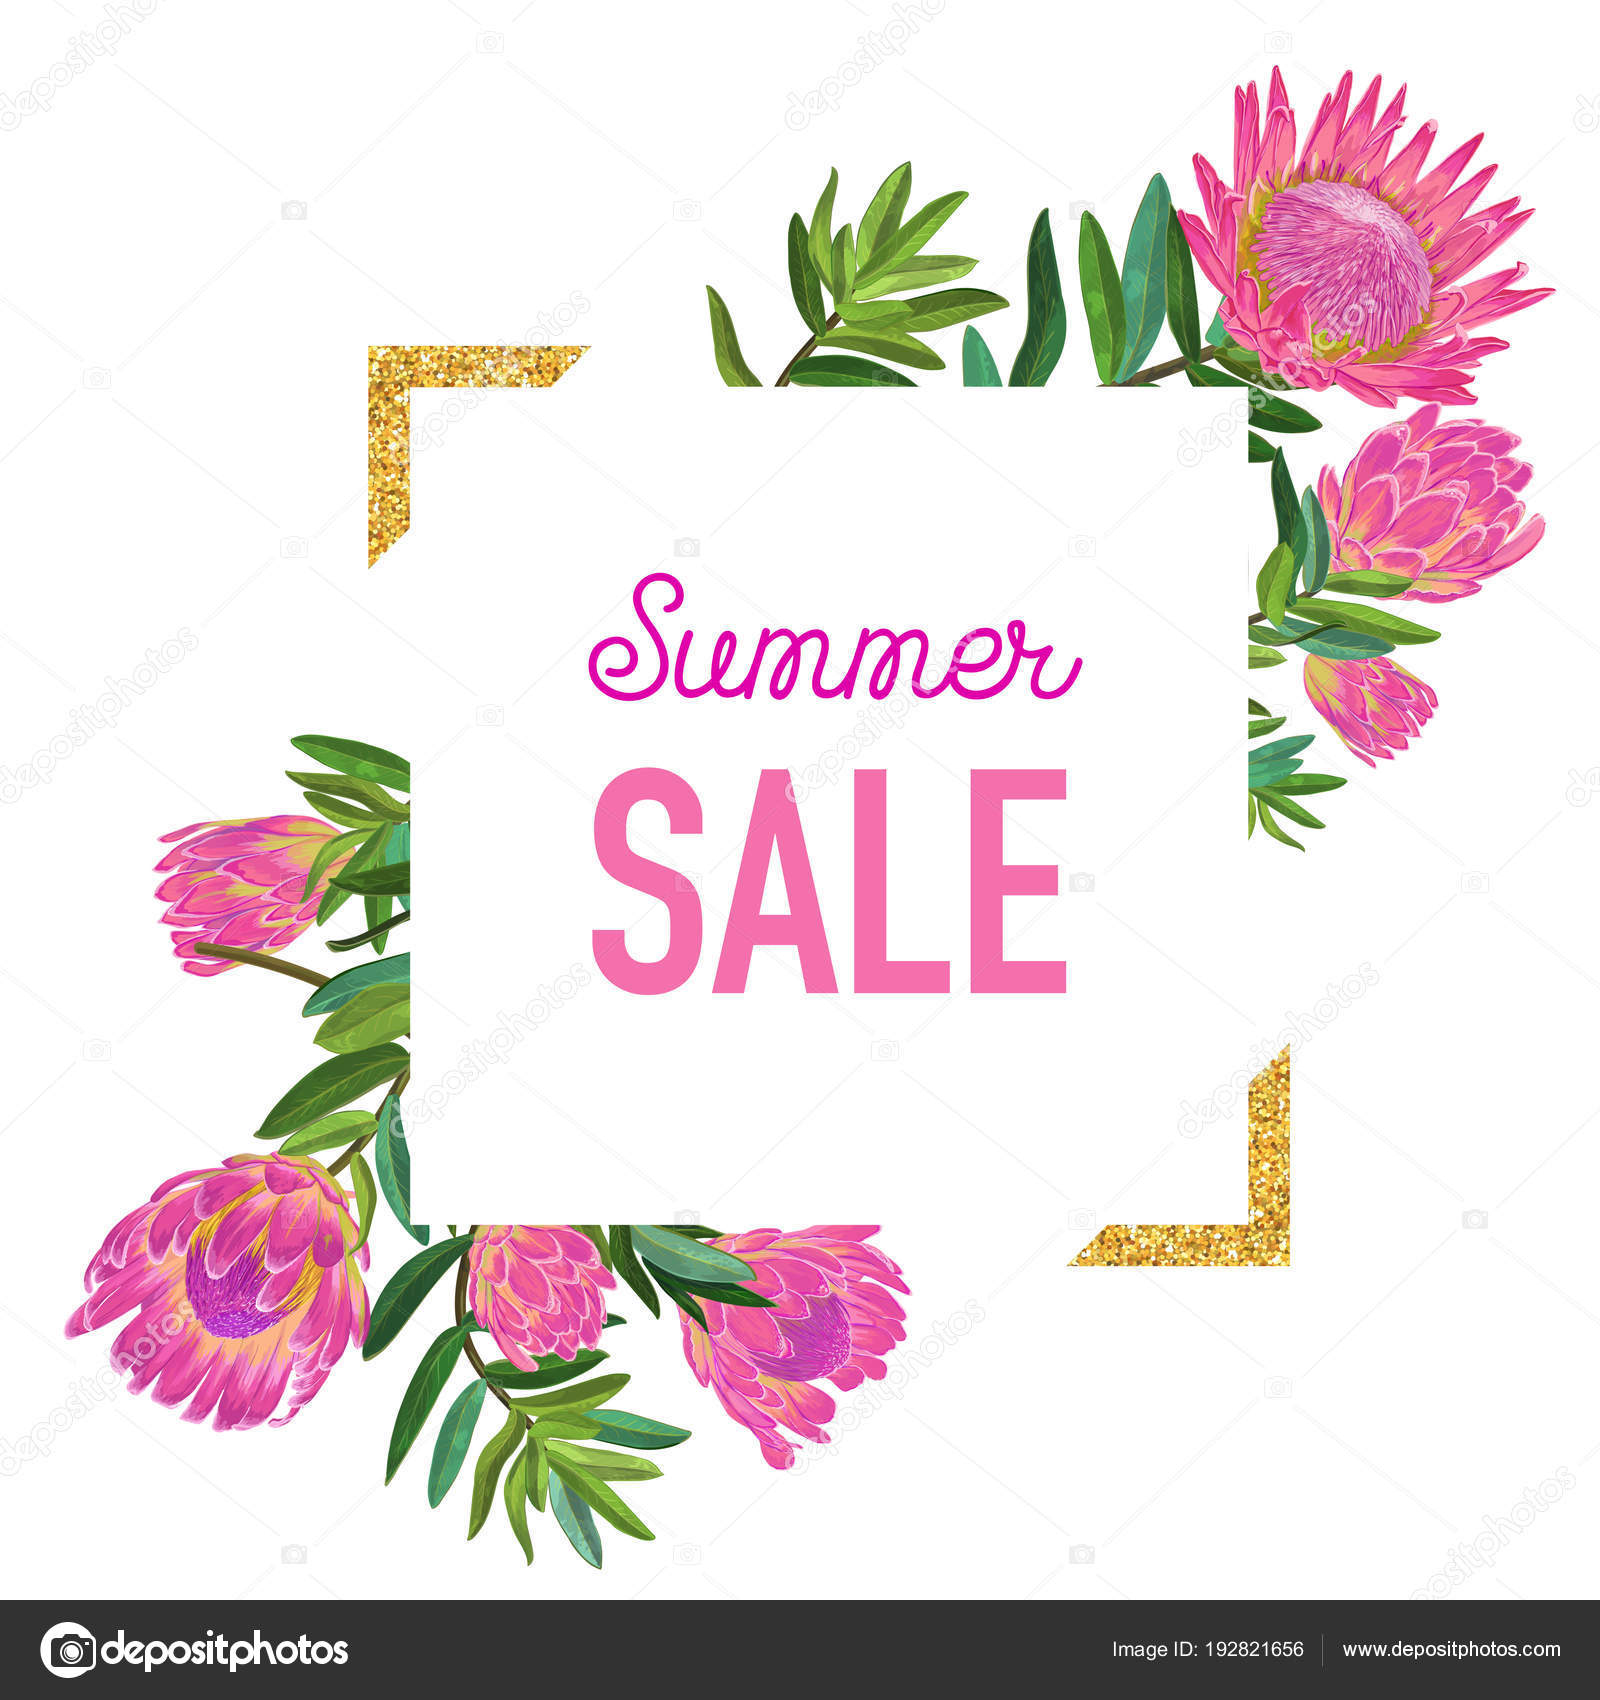 Summer sale floral banner with golden frame seasonal discount summer sale floral banner with golden frame seasonal discount advertising with pink protea flowers izmirmasajfo